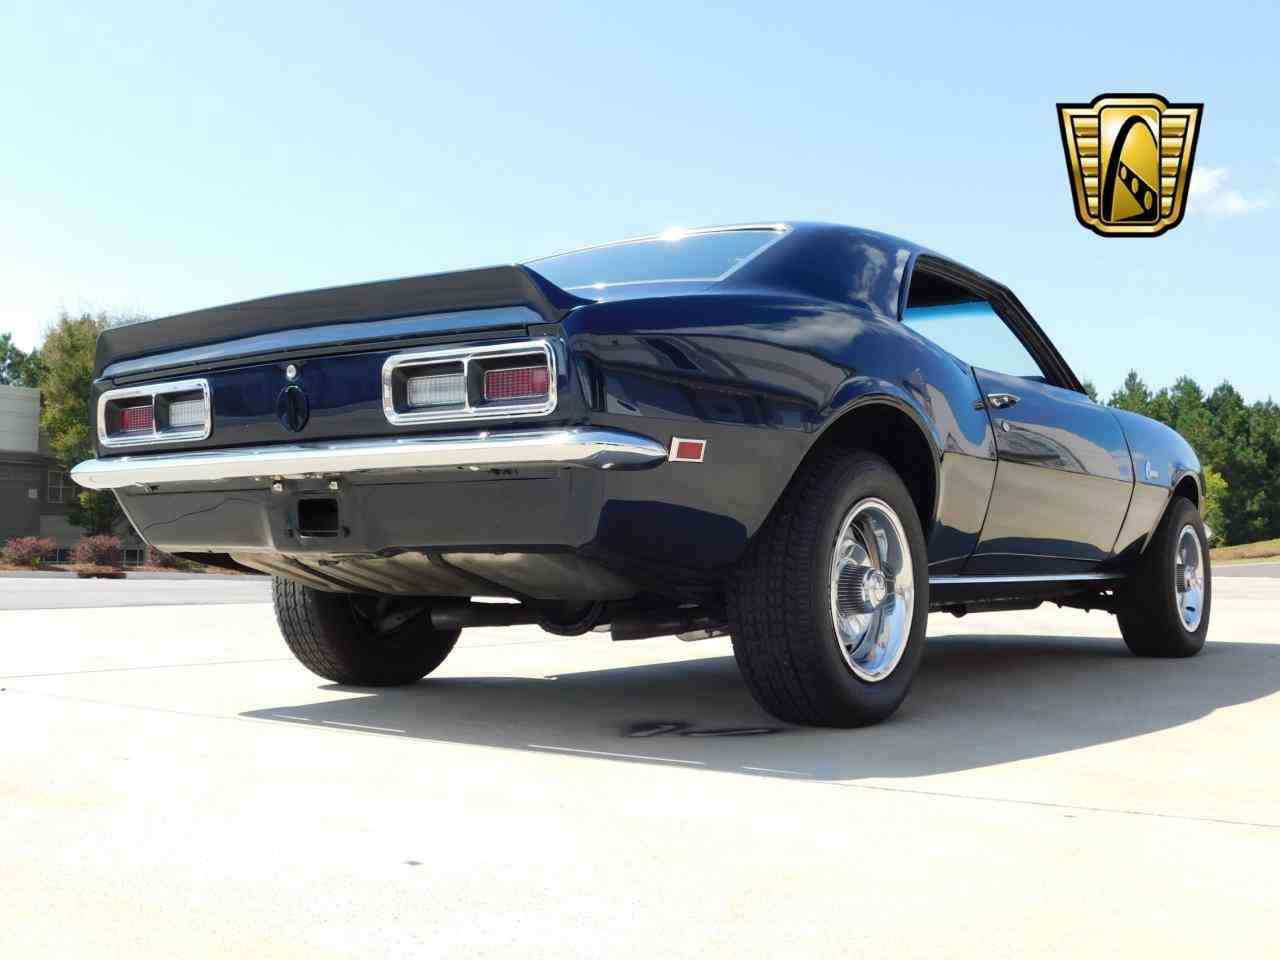 Large Picture of Classic '68 Camaro located in Georgia - $33,995.00 Offered by Gateway Classic Cars - Atlanta - LRVS